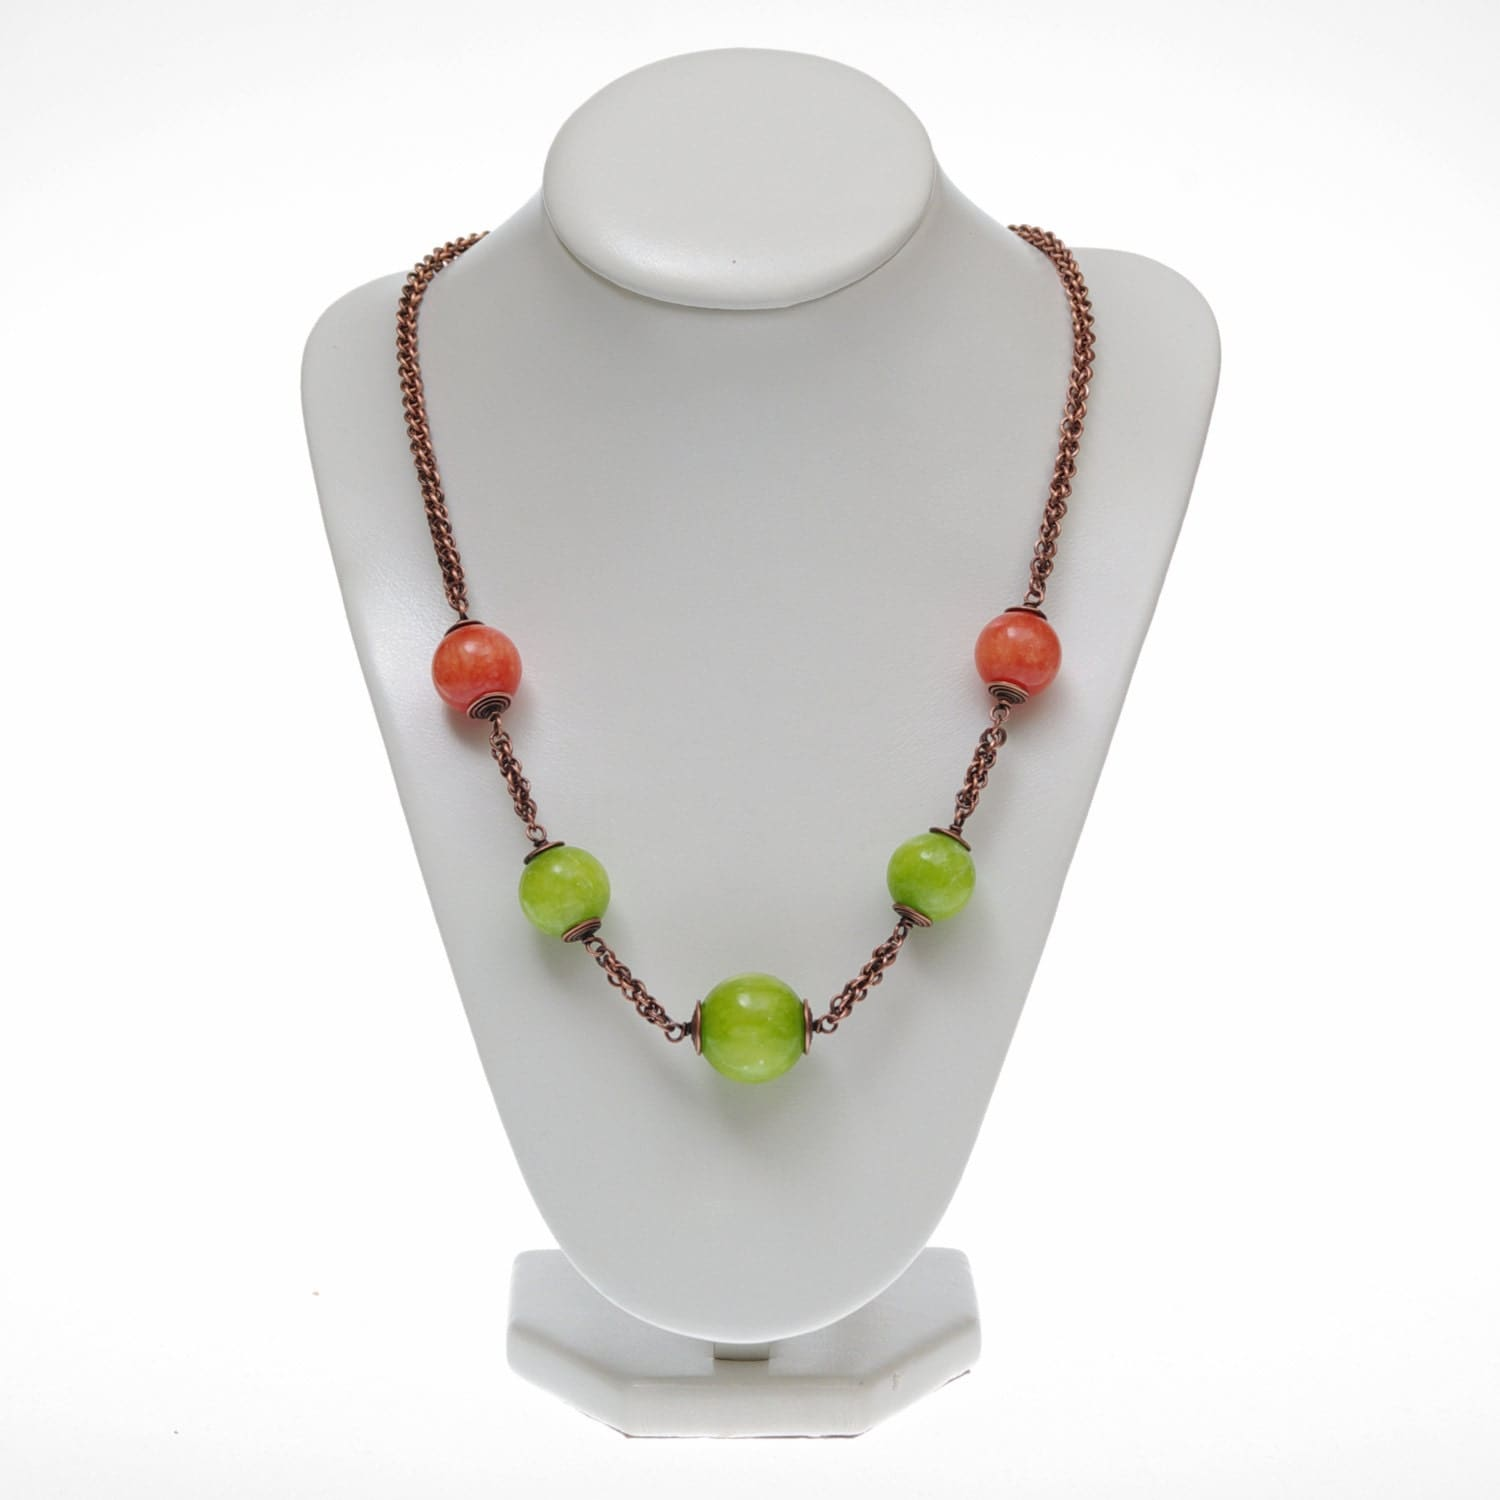 jade necklace, spring green, lime, orange jade, chainmaille copper necklace, oxidized copper, women jewelry, long, big beads - Verha